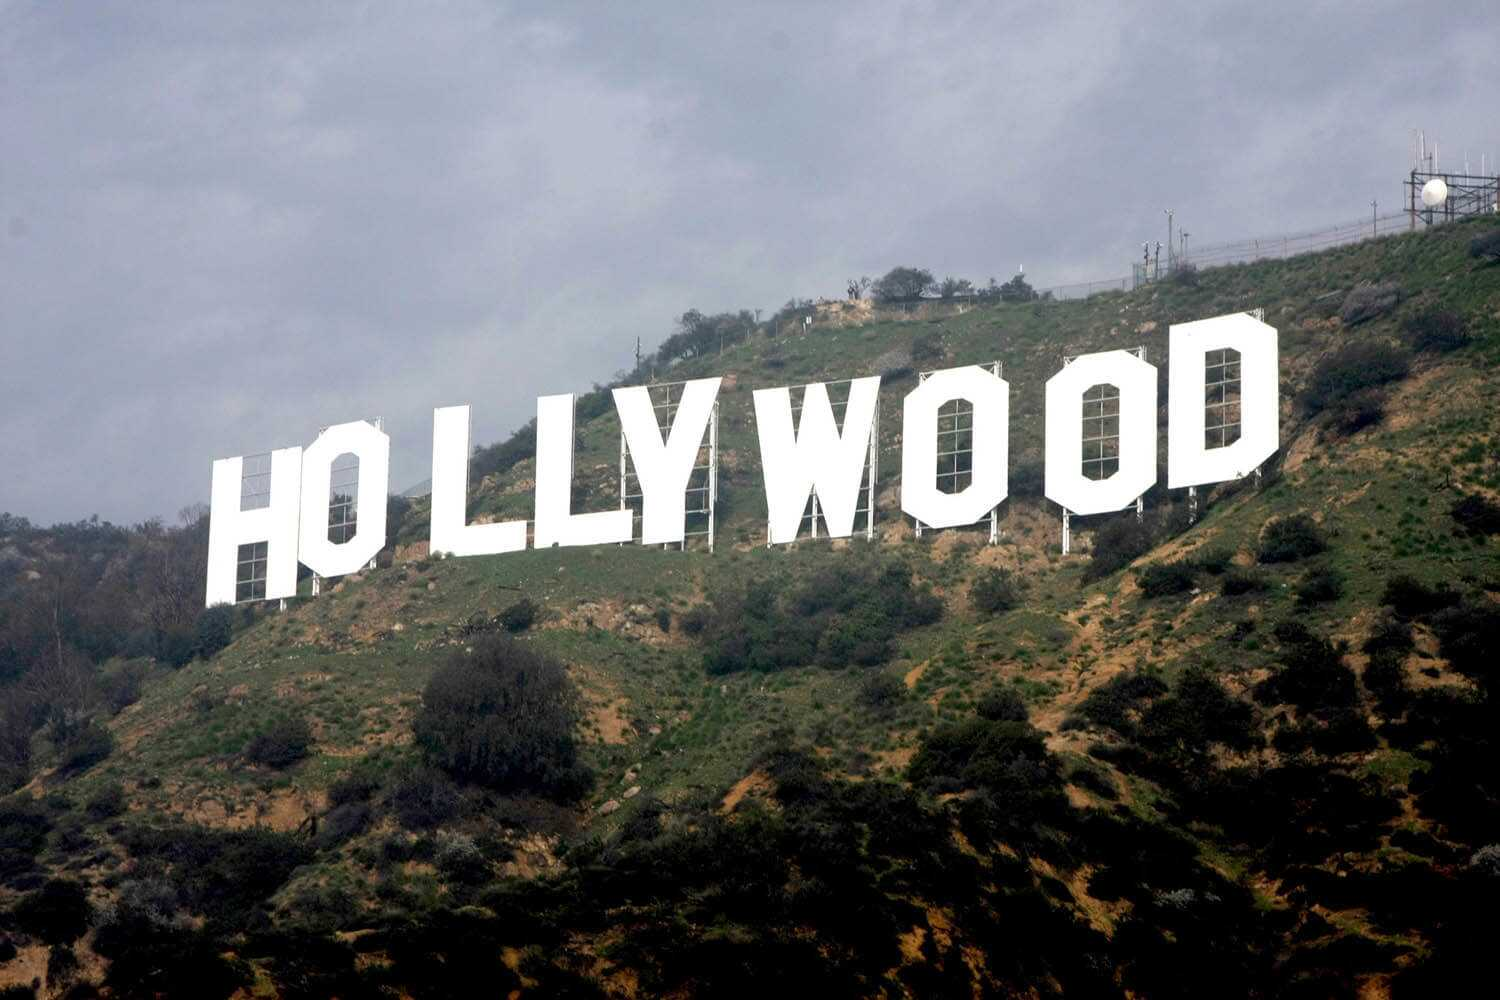 004-hollywoodsign_plus